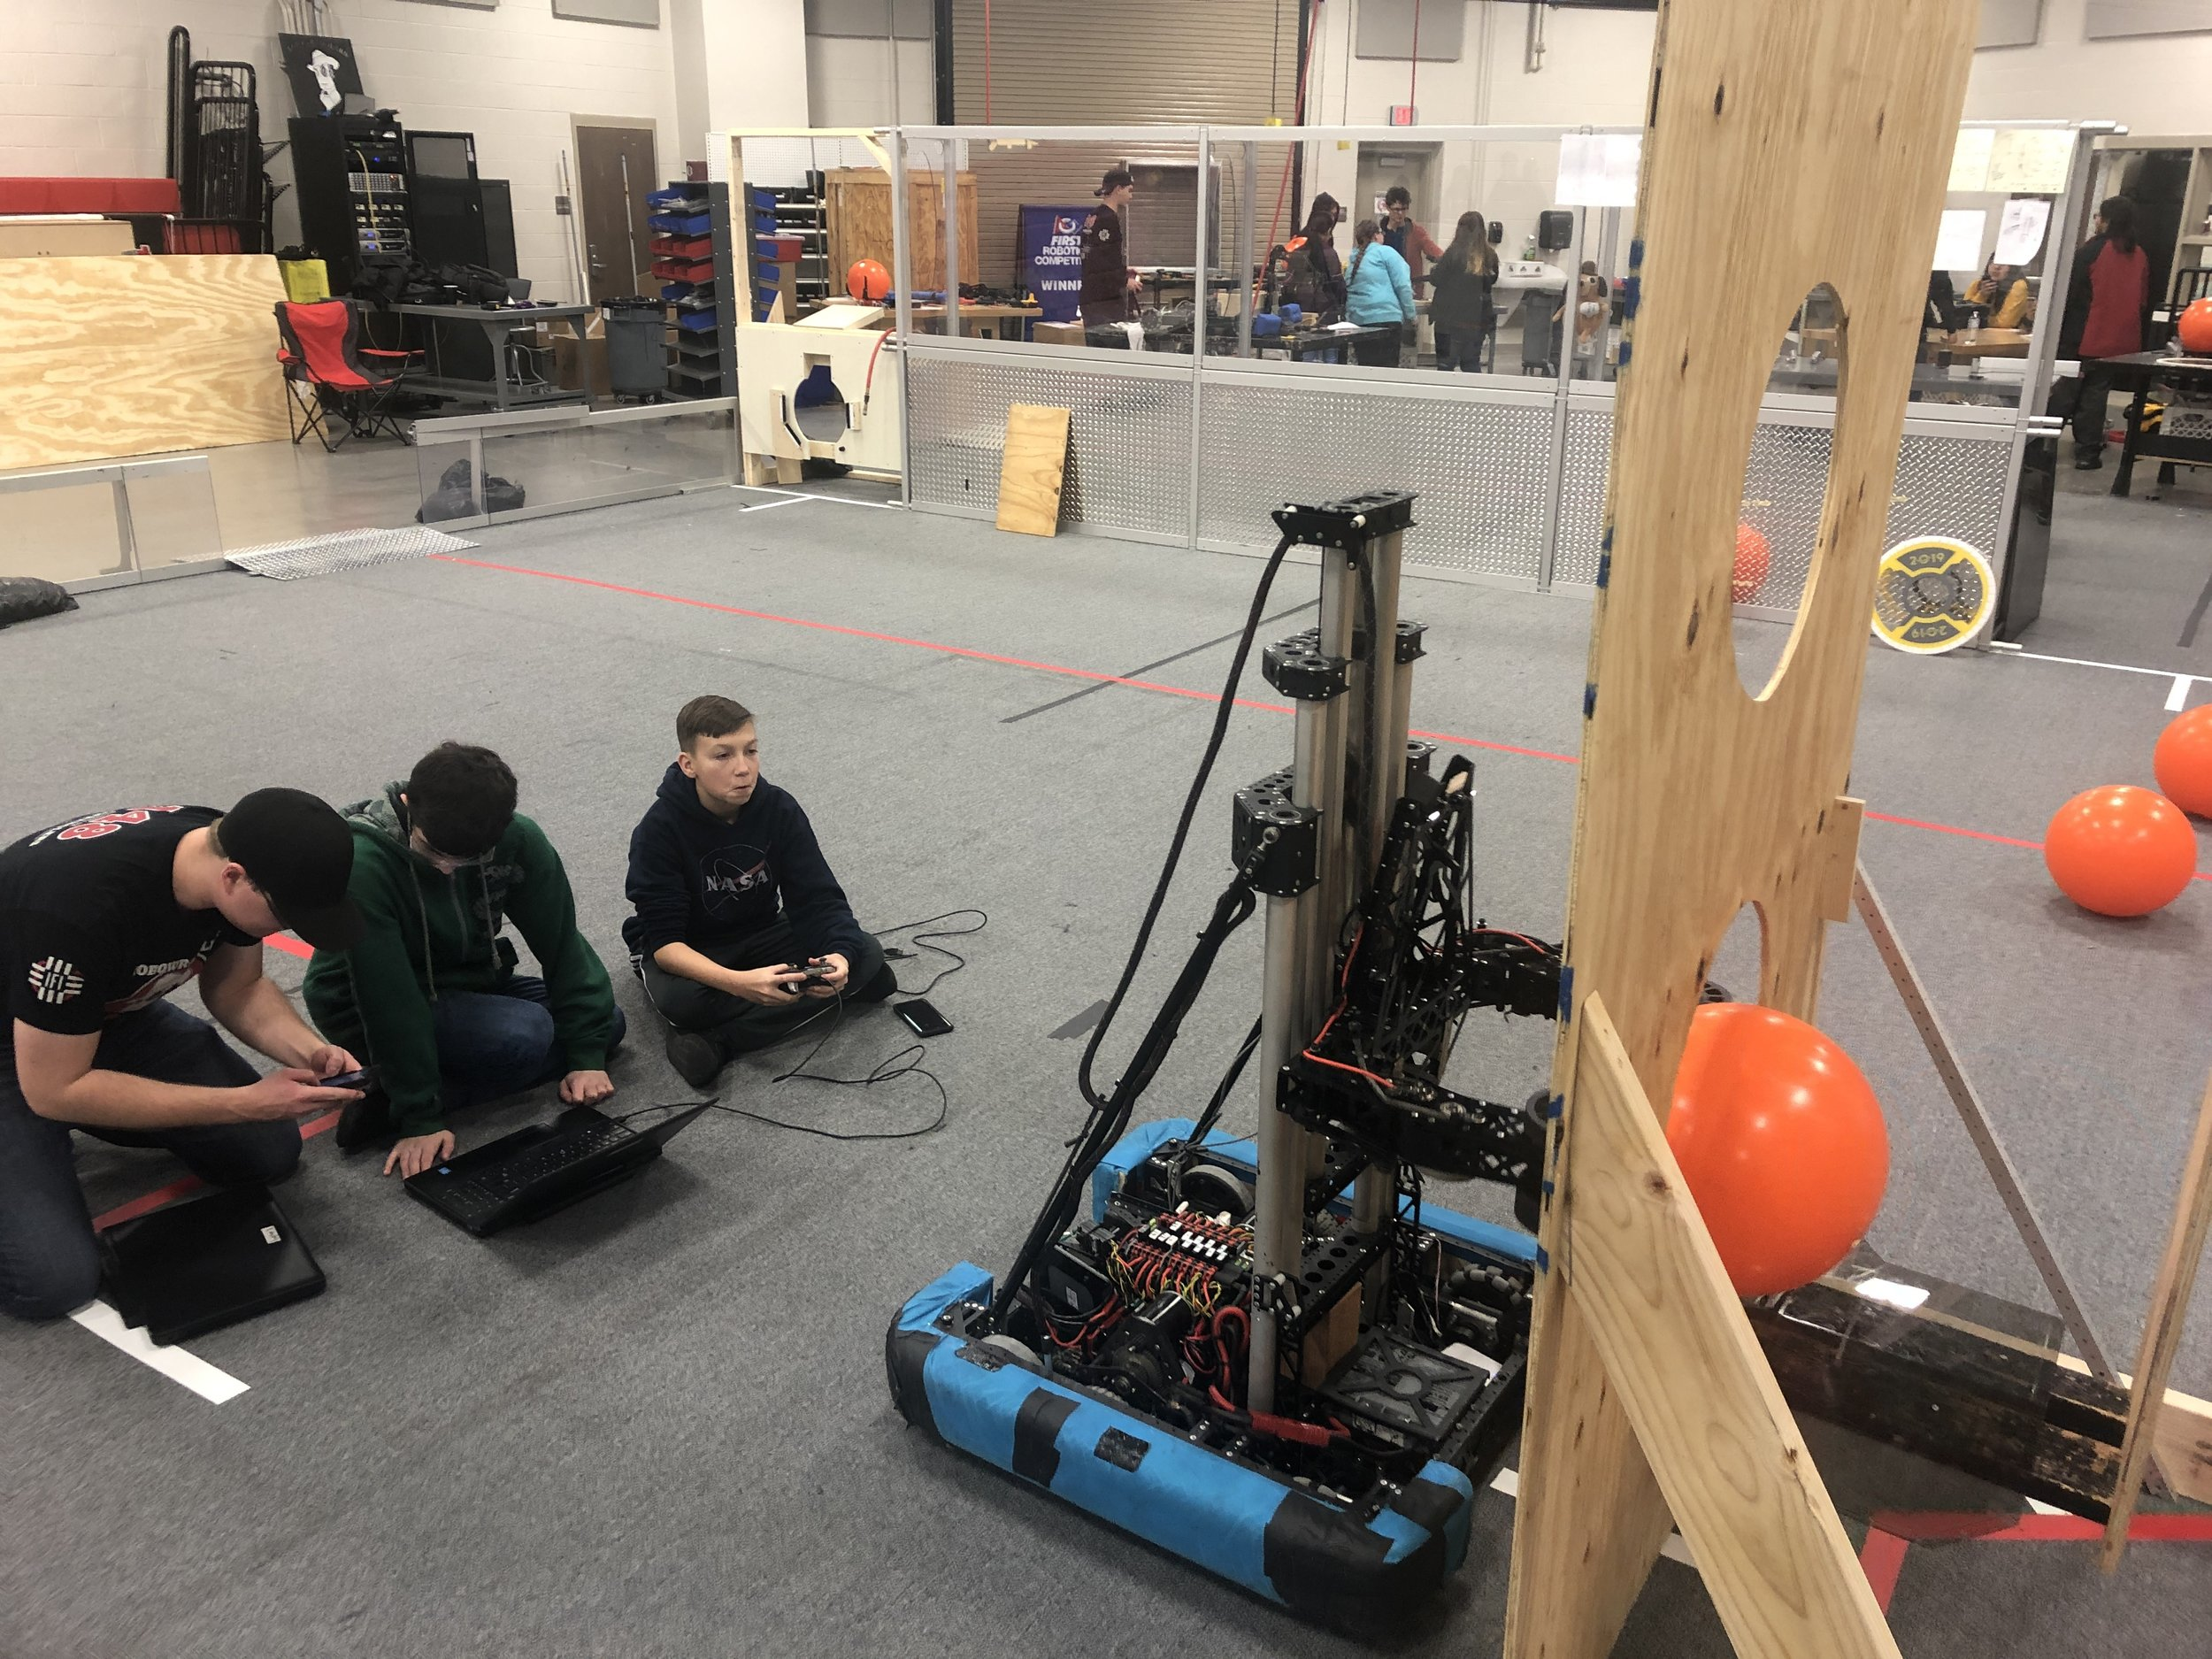 """It turns out Uppercut can """"hook"""" the balls pretty well to the right or left once they're scored in the Rocket Goals. Maybe this will be useful for us on the 2019 robot?"""